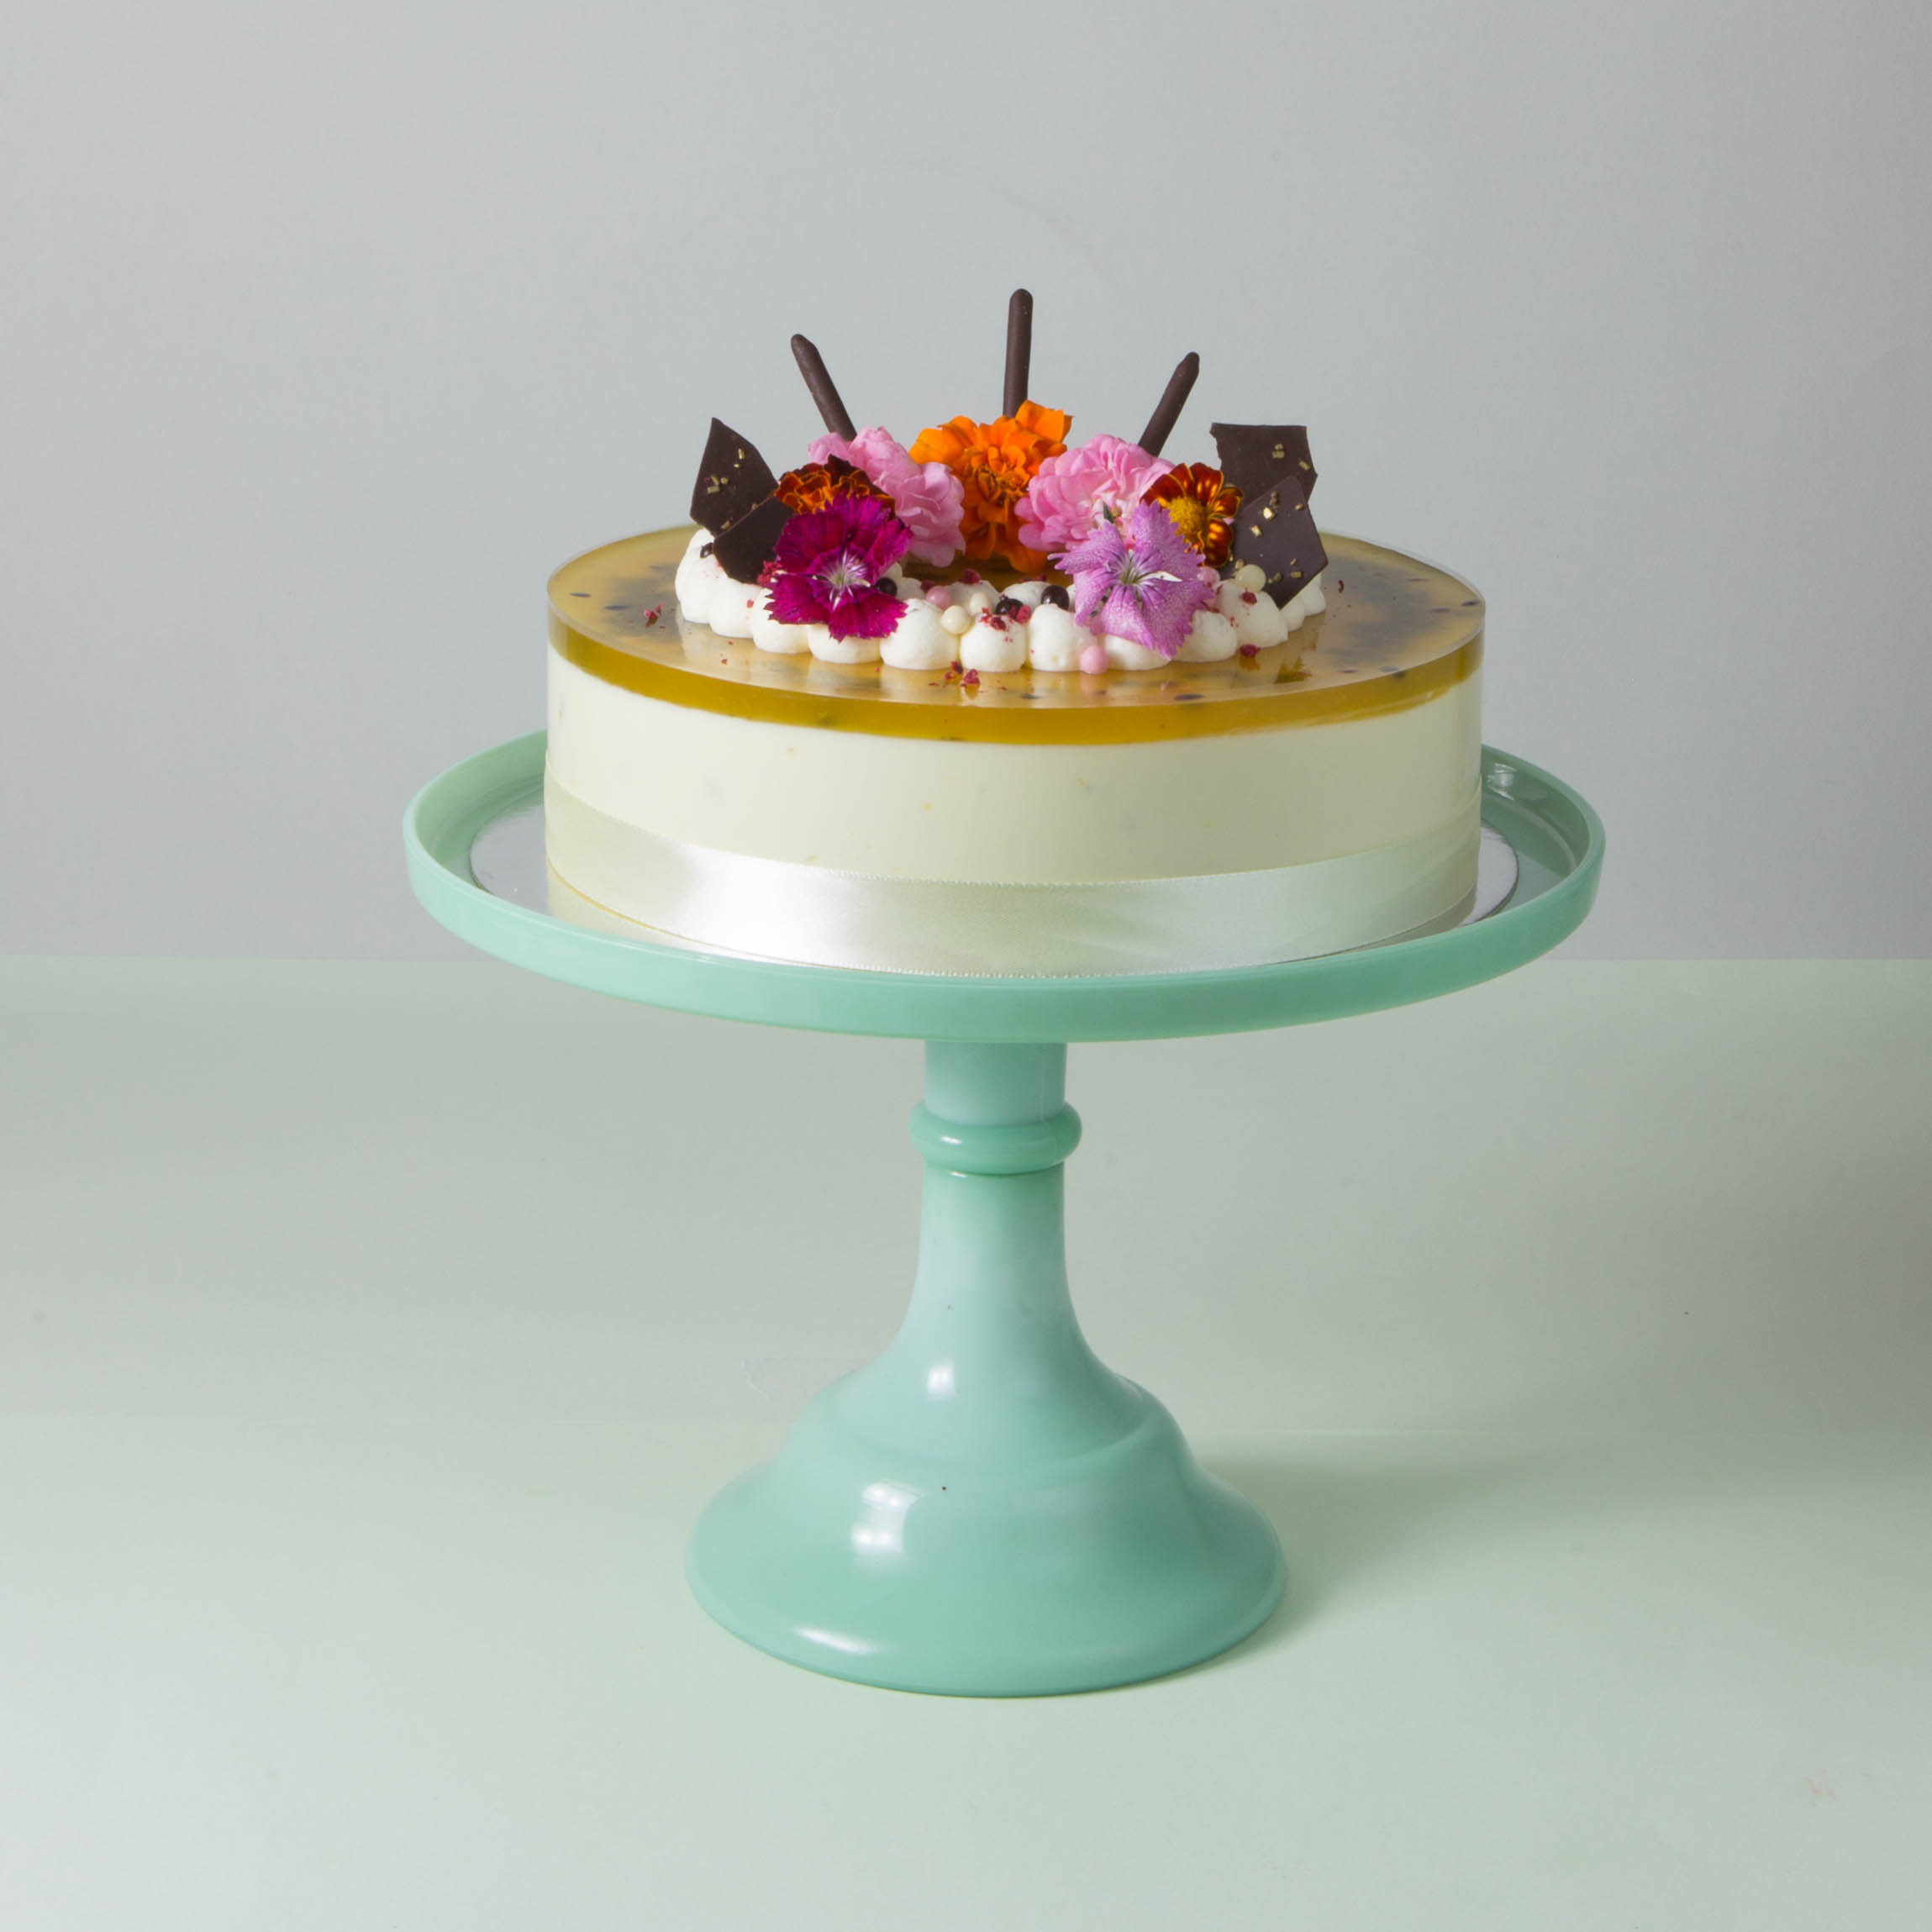 Mousse Cakes - Delicious cakes made from the finest materials